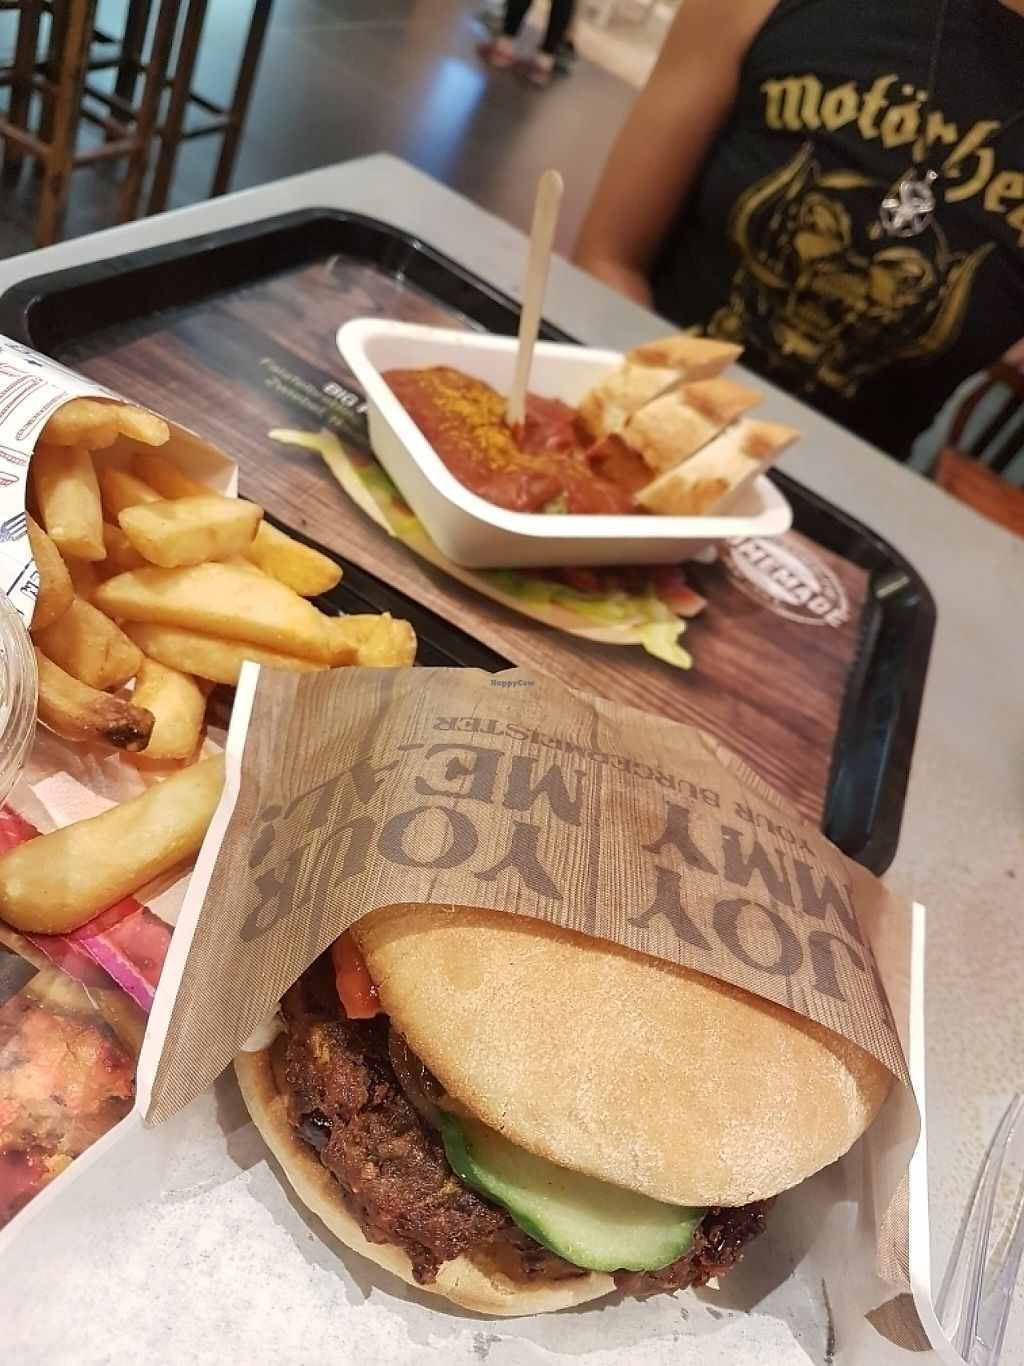 """Photo of Burgermeister der Grill  by <a href=""""/members/profile/Phoenix1973"""">Phoenix1973</a> <br/>Kidney Bean Burger and Curry Wurst <br/> June 6, 2017  - <a href='/contact/abuse/image/80569/266245'>Report</a>"""